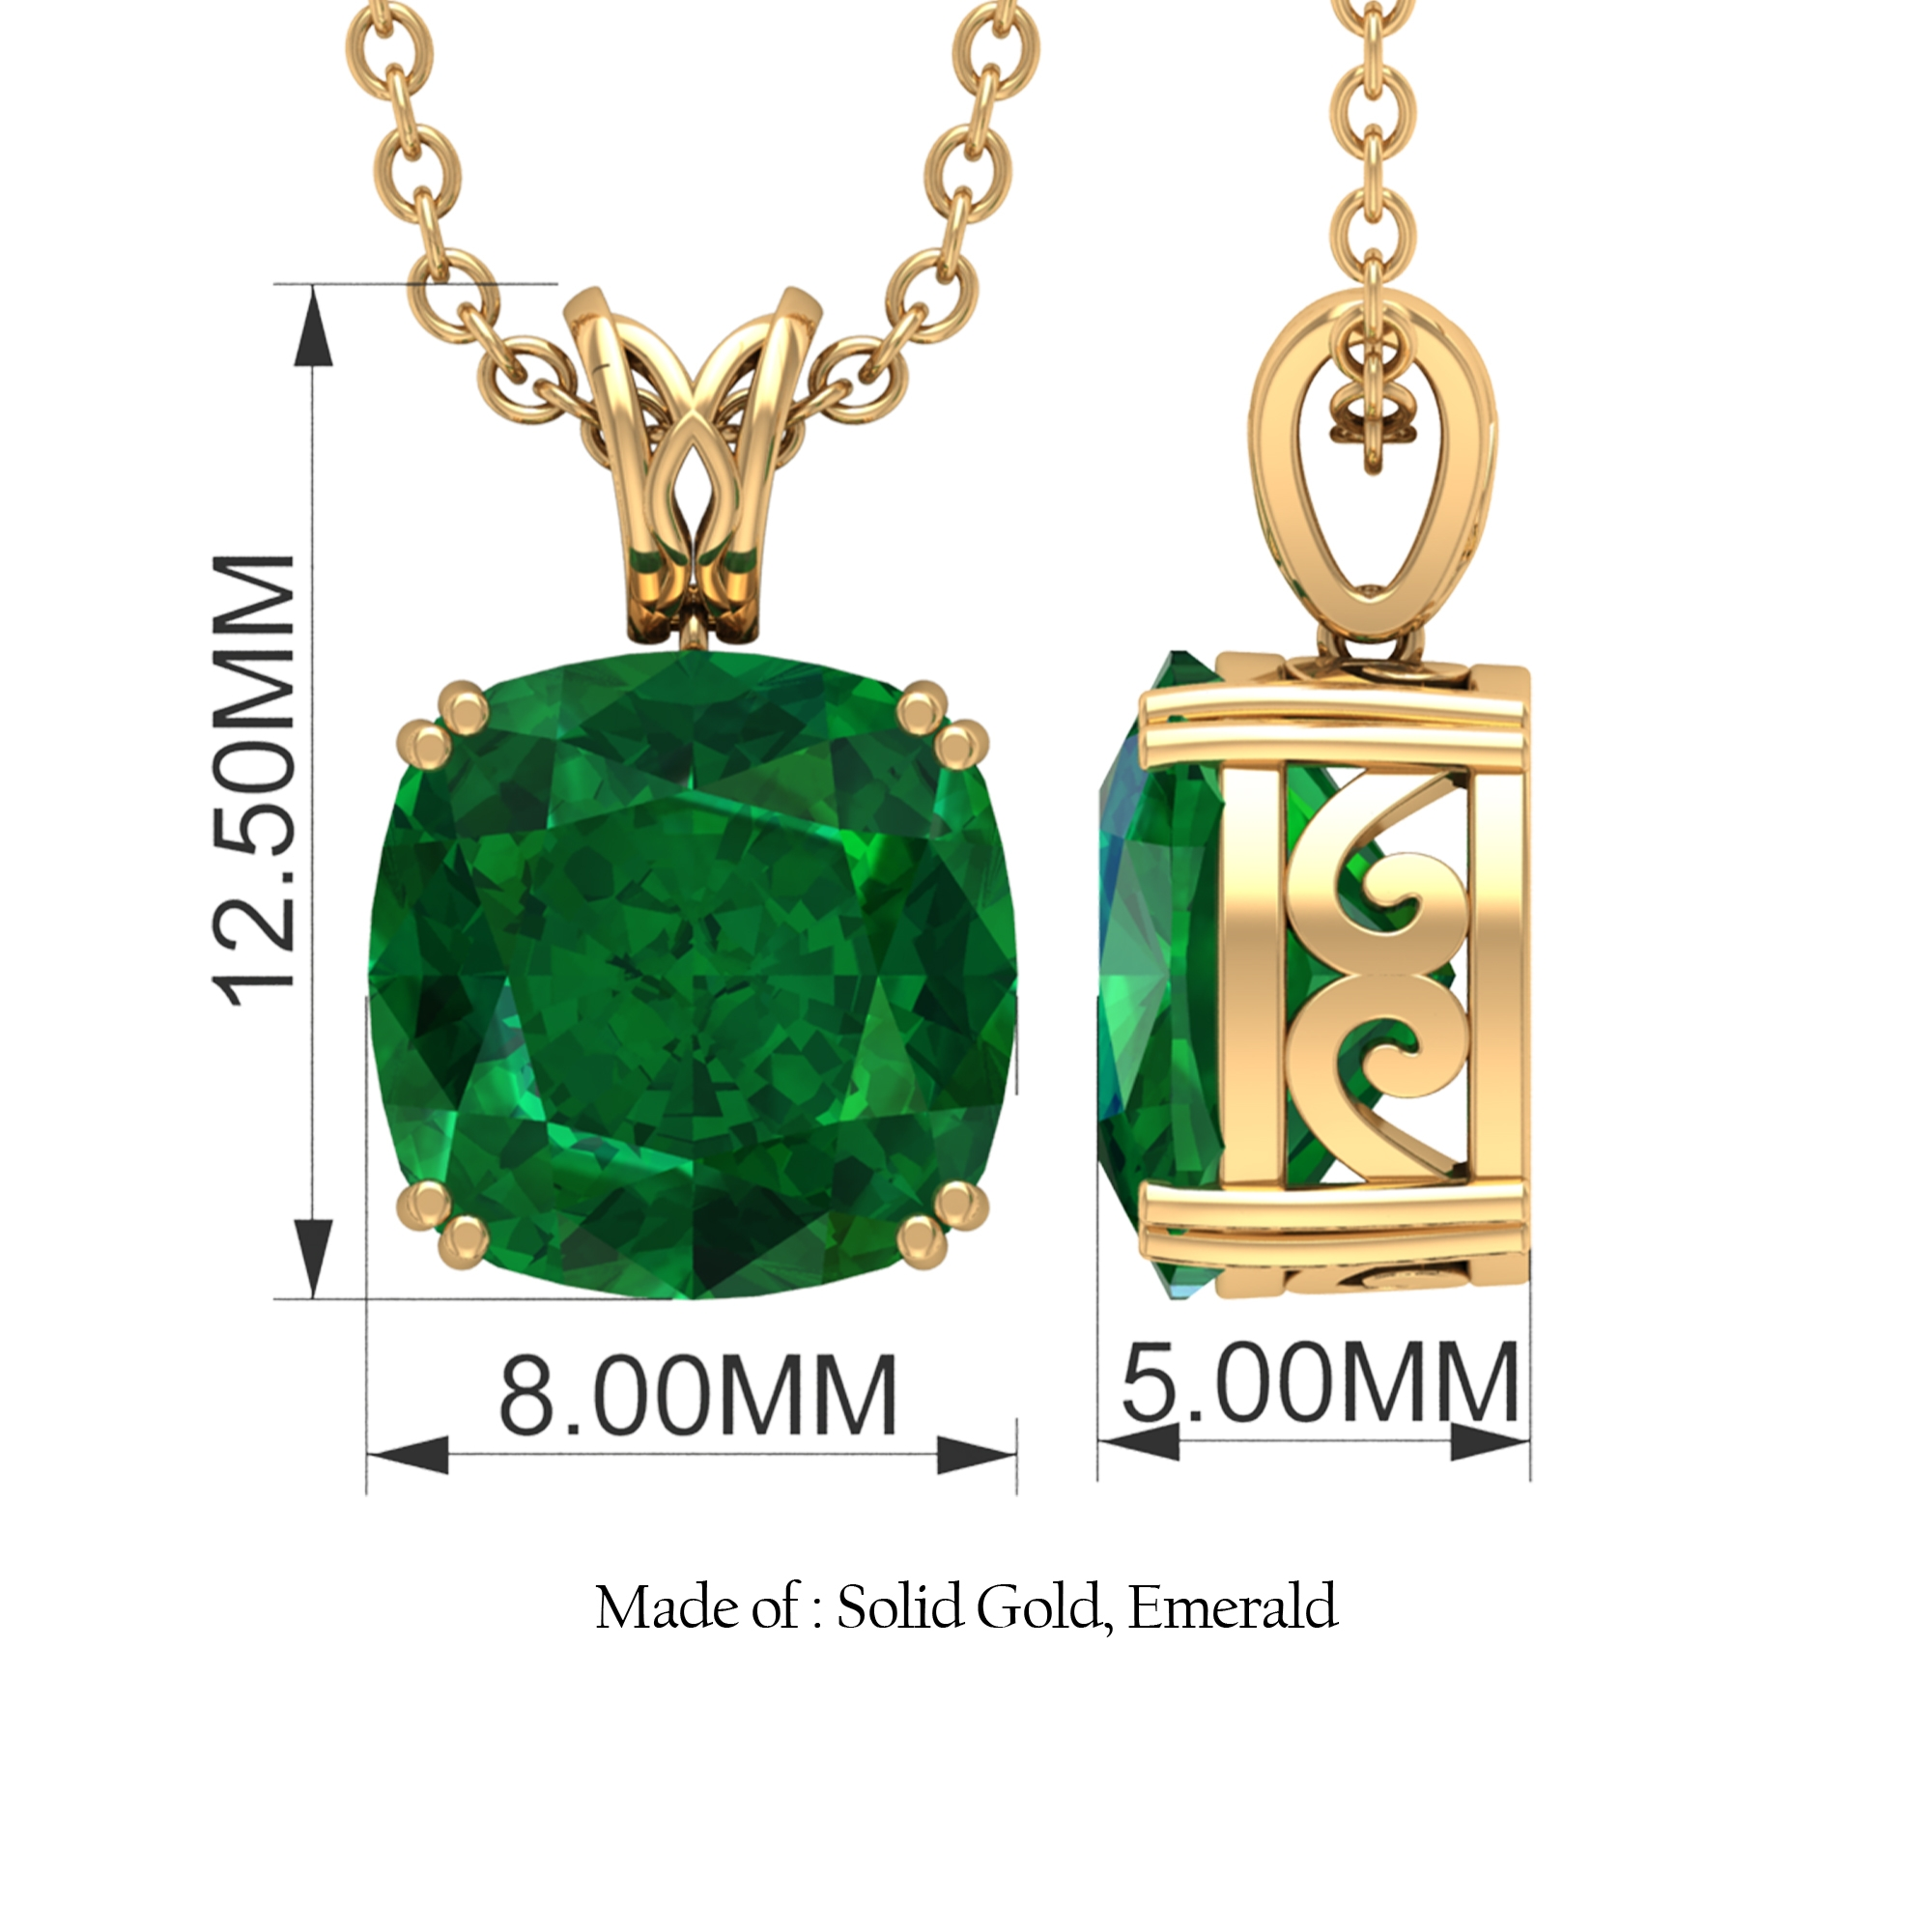 8 MM Cushion Cut Emerald Solitaire Minimal Pendant in Double Prong Setting with Decorative Bail